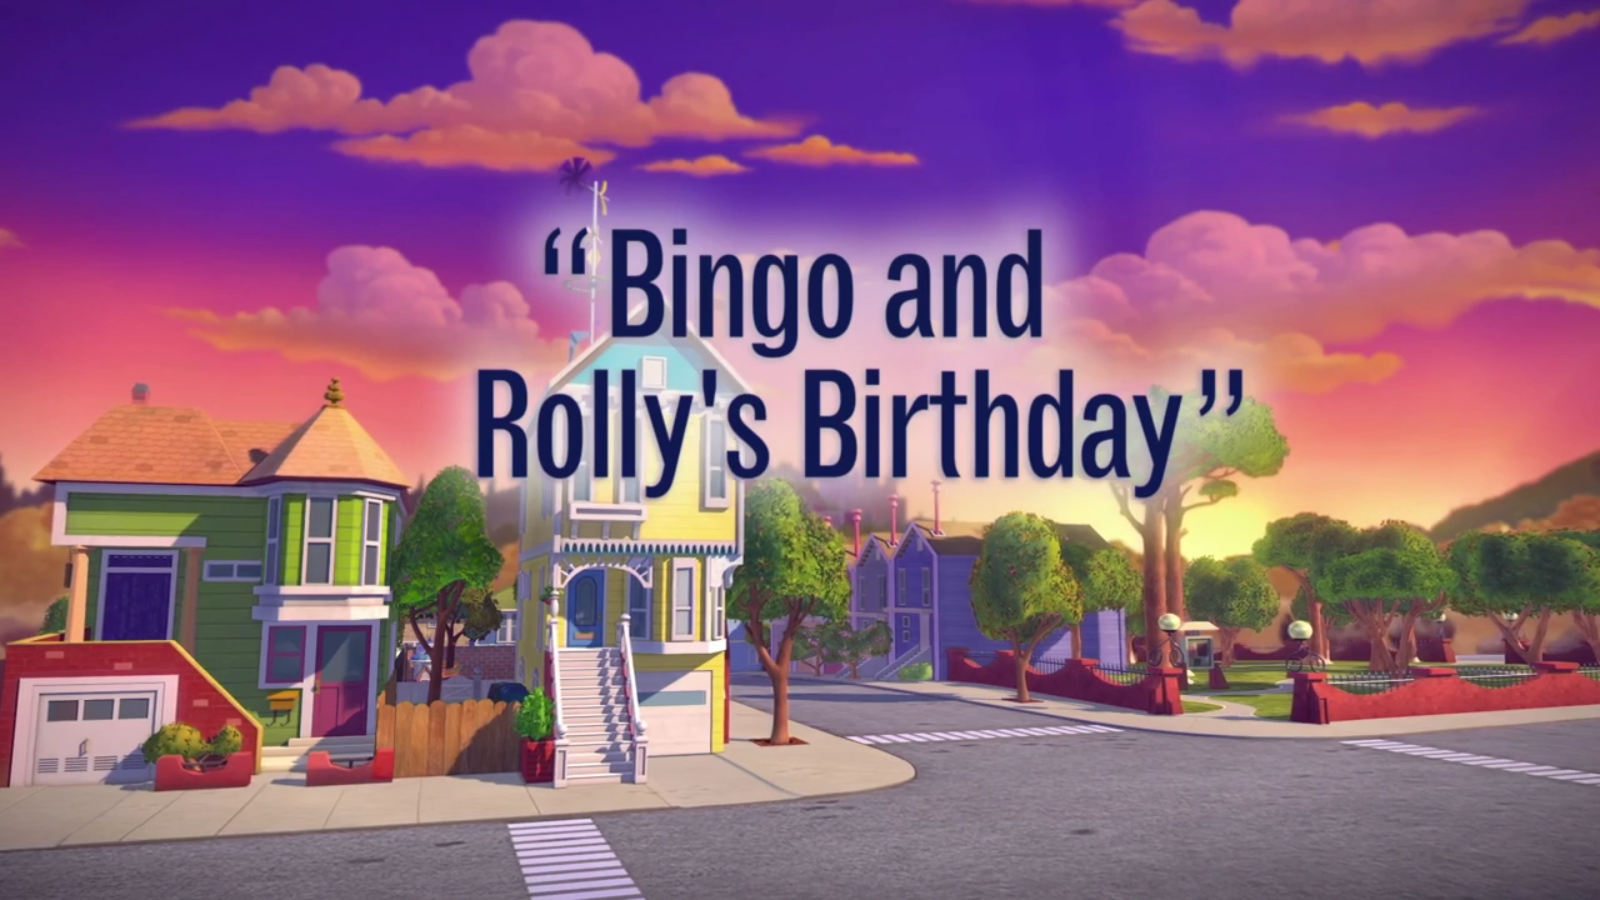 Bingo and Rolly's Birthday